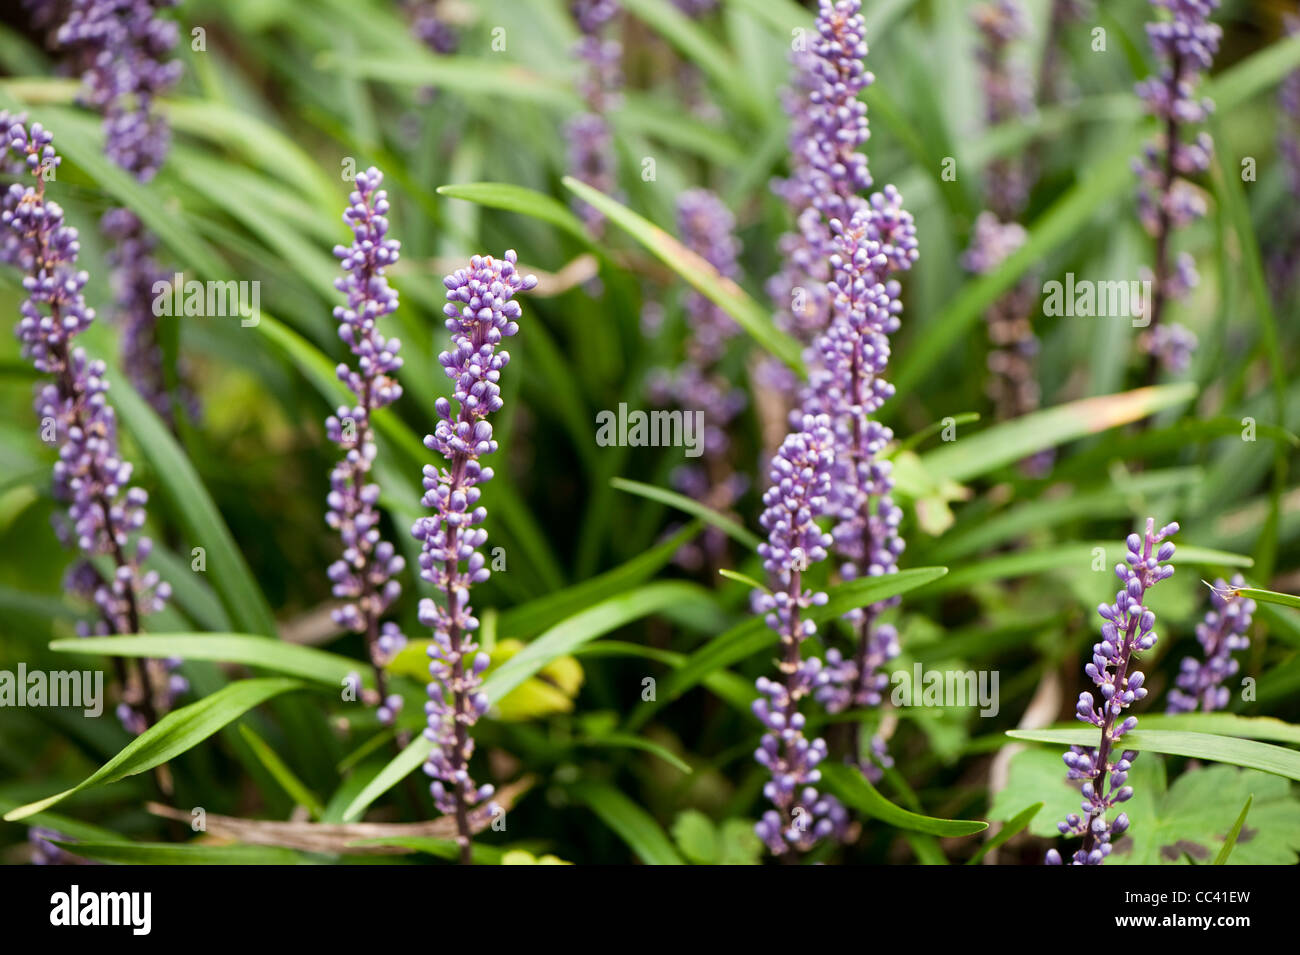 Liriope Muscari Agm Big Blue Lilyturf Stock Photo 41885617 Alamy